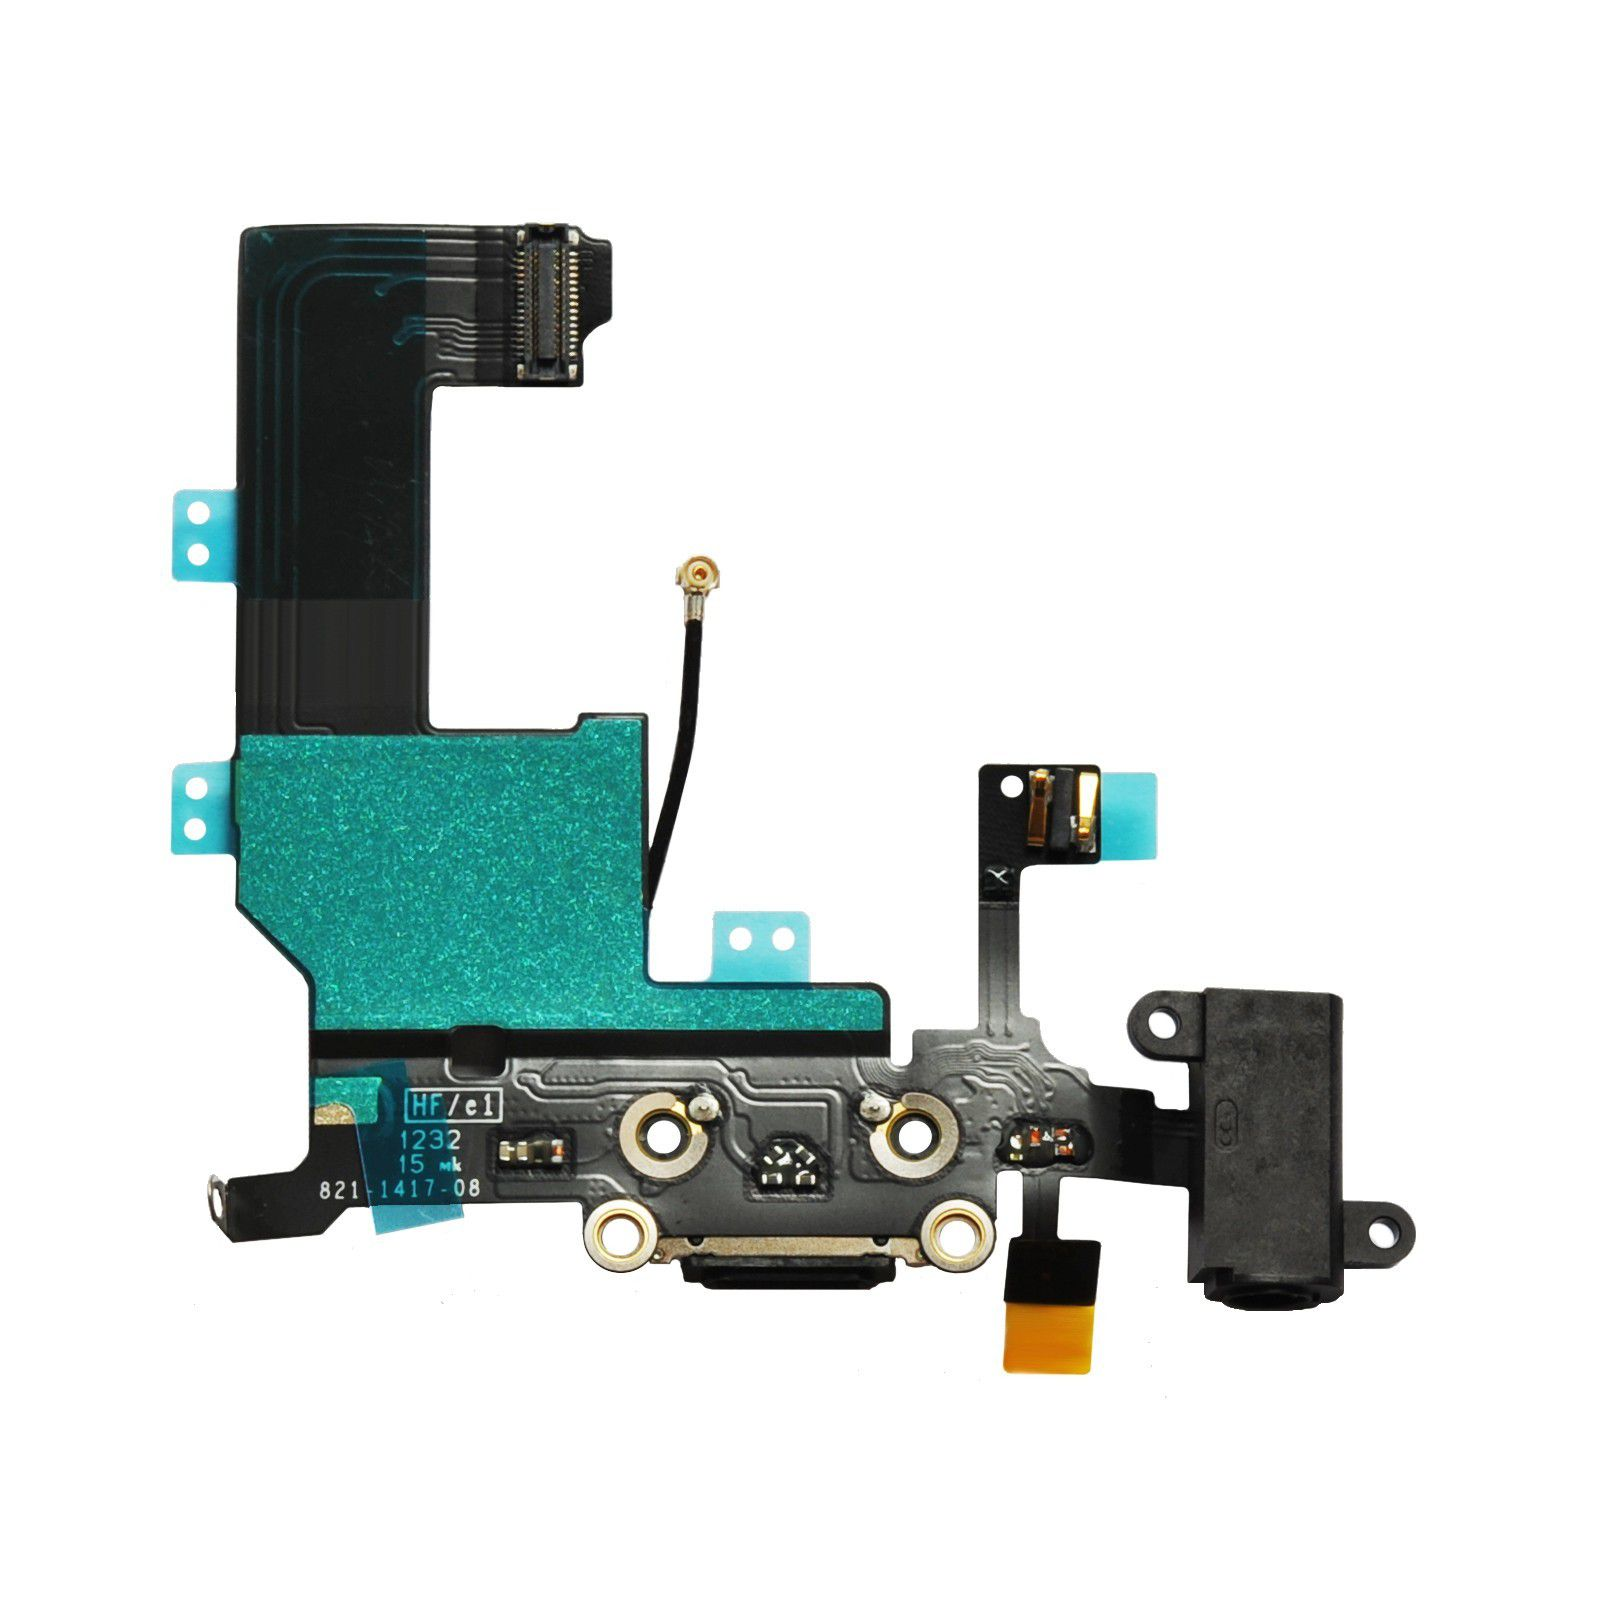 Cabo Flex Conector Dock Carga Audio Antena iPhone 5 Original